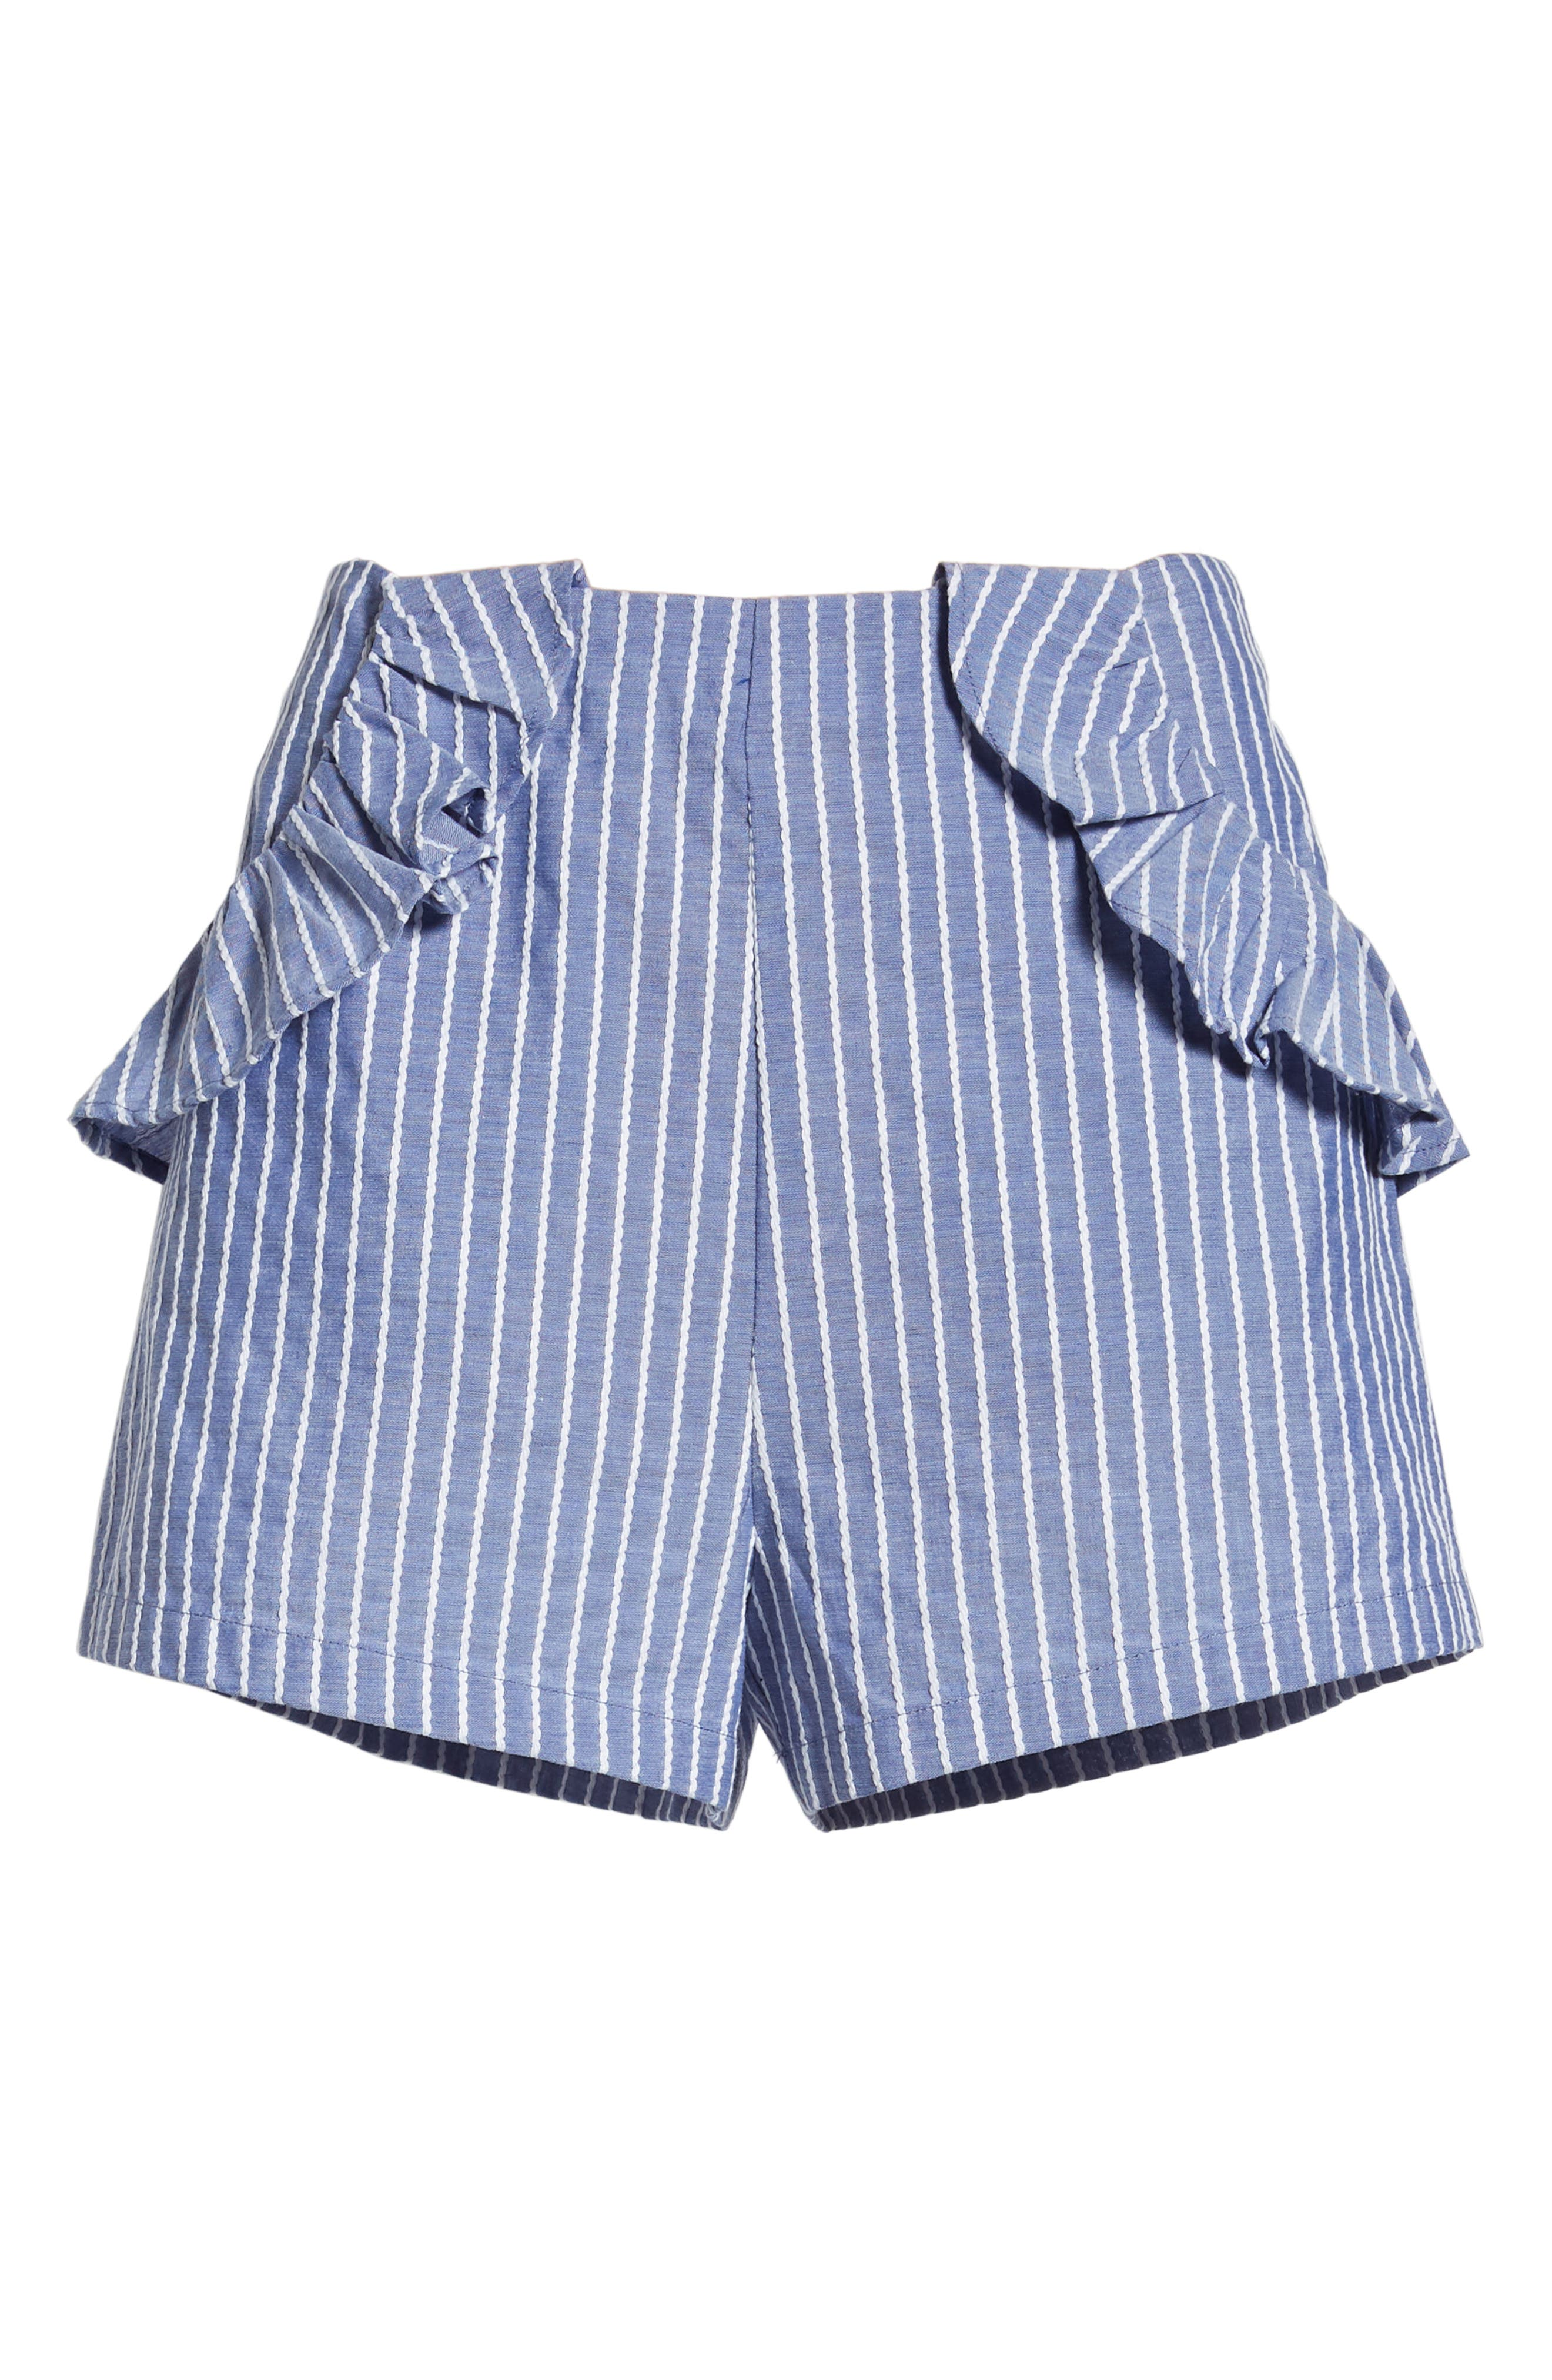 Parcel Ruffle Detail Shorts,                             Alternate thumbnail 8, color,                             Blue With White